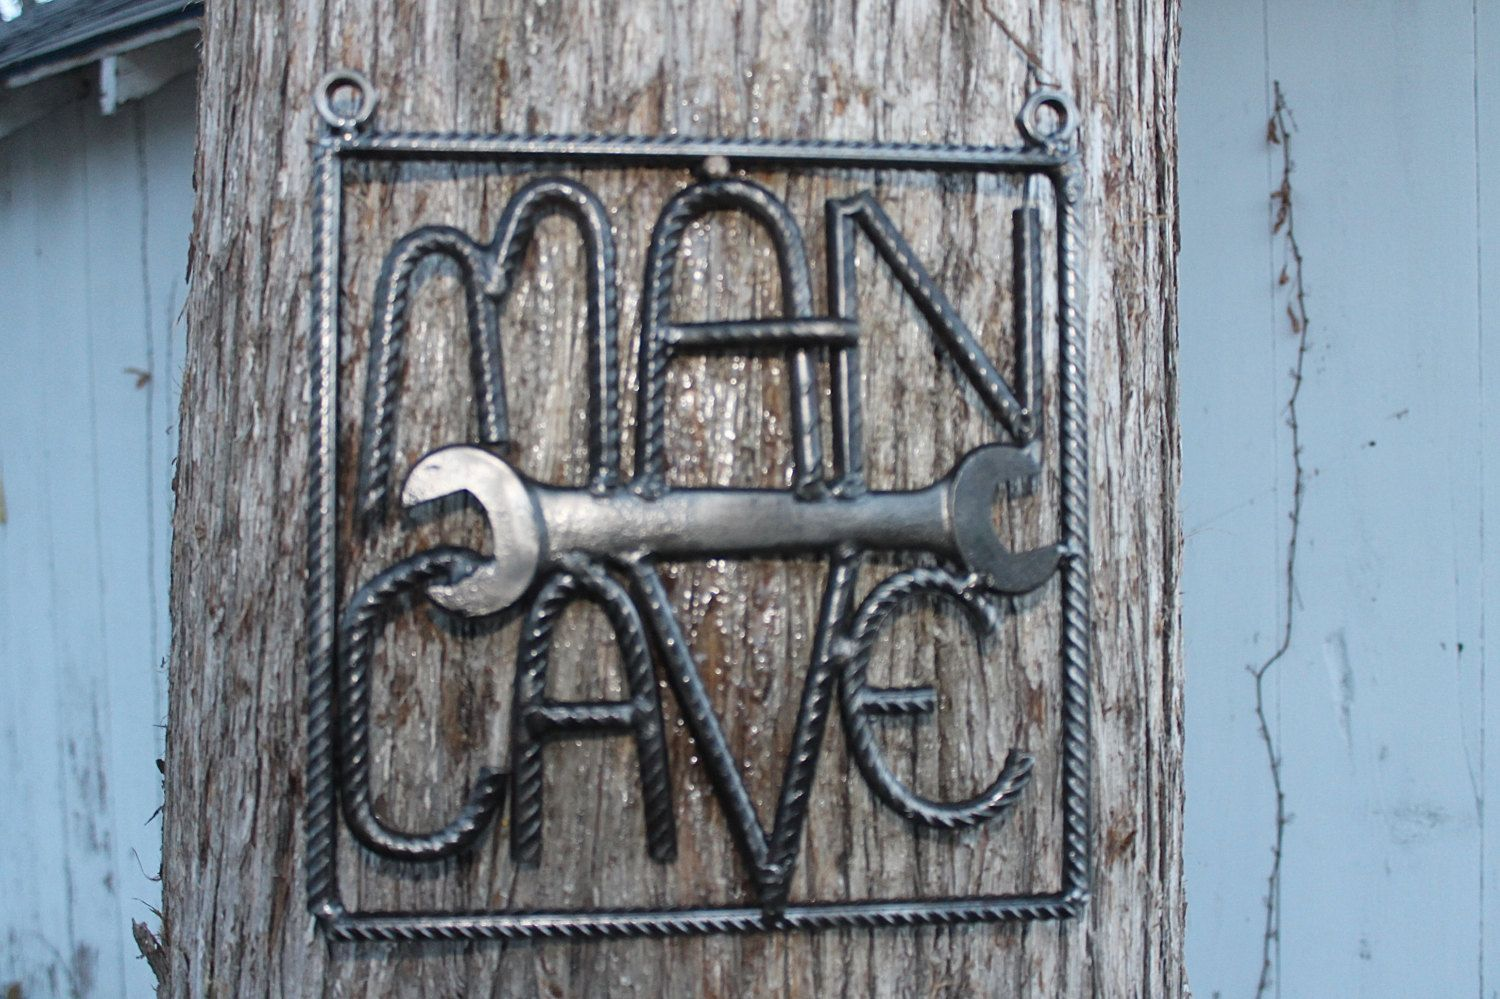 Man Cave Signs Australia : Salvaged rebar man cave sign art gift for him welded